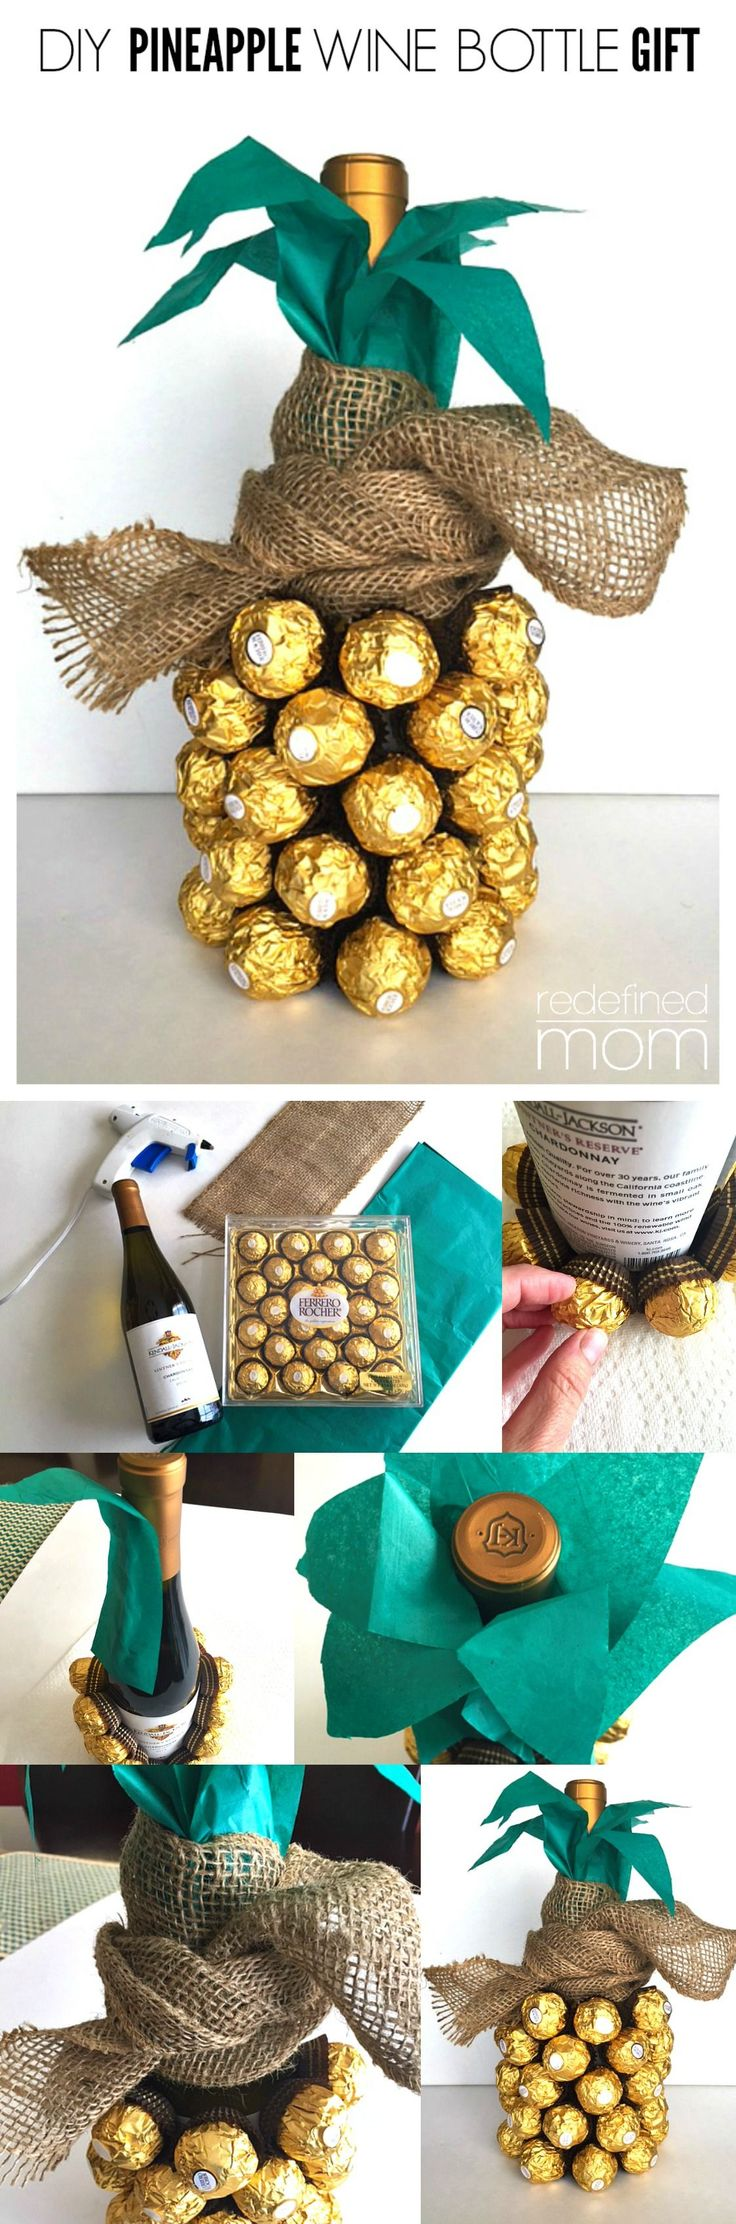 Best 25+ 21st birthday gifts ideas on Pinterest | 21 birthday ...